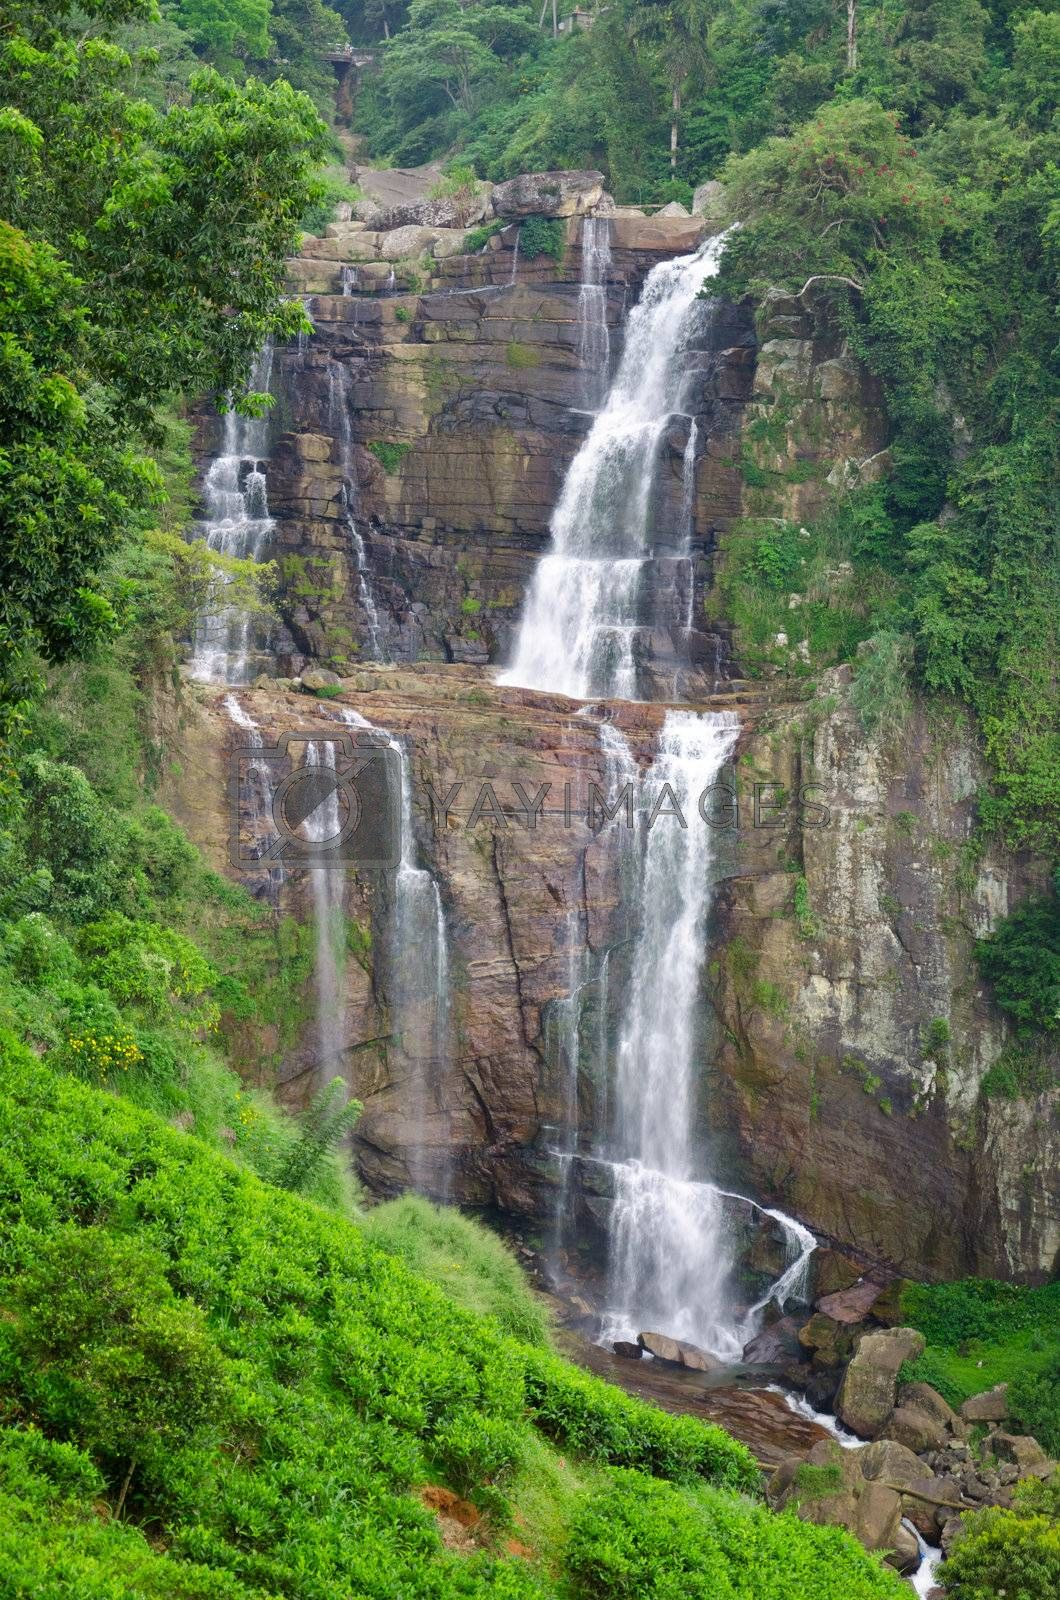 Ramboda magnificent waterfall in the mountains of Sri Lanka